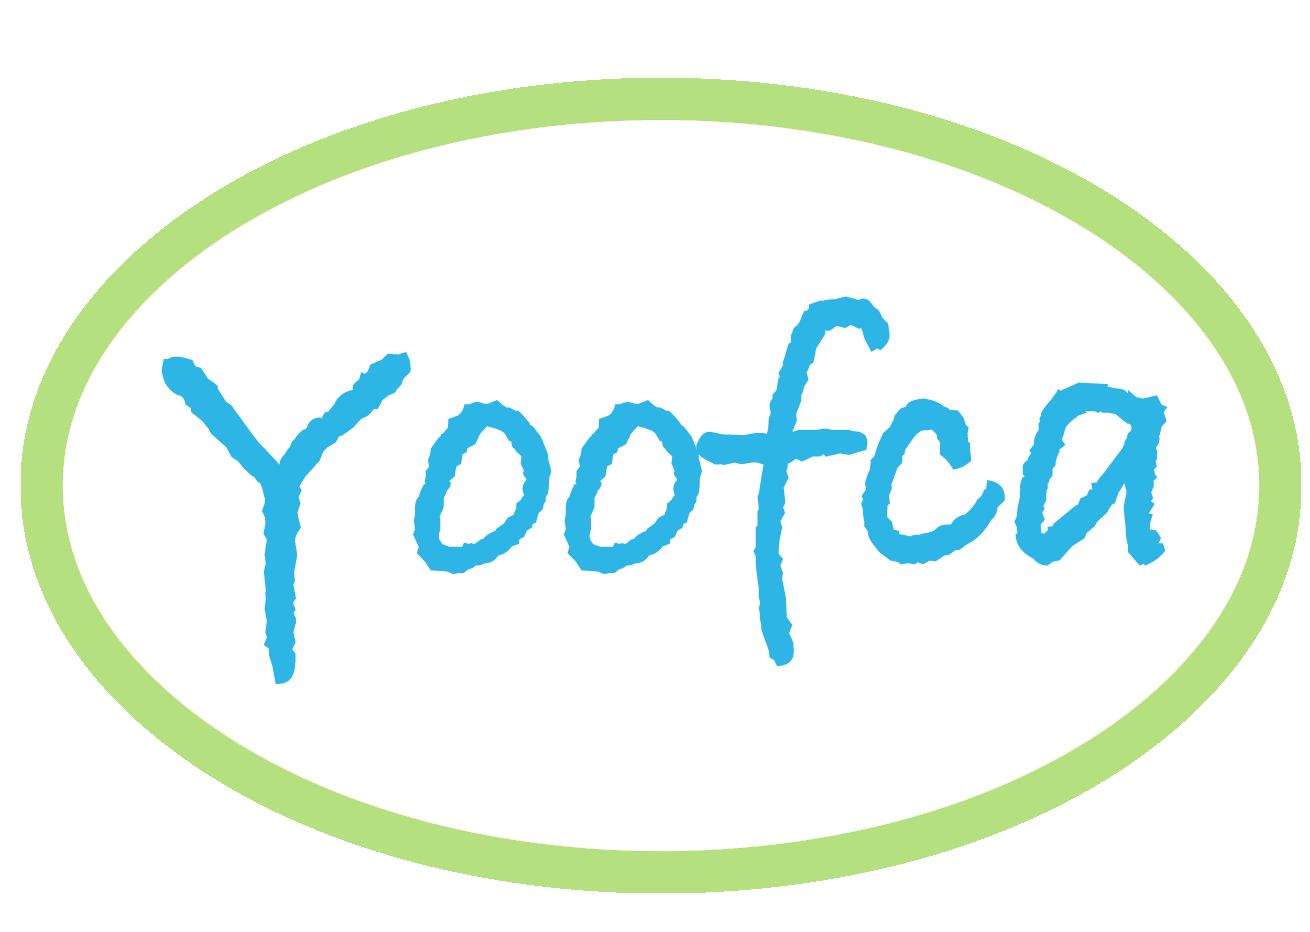 Yoofca – Catering in Orlando area.